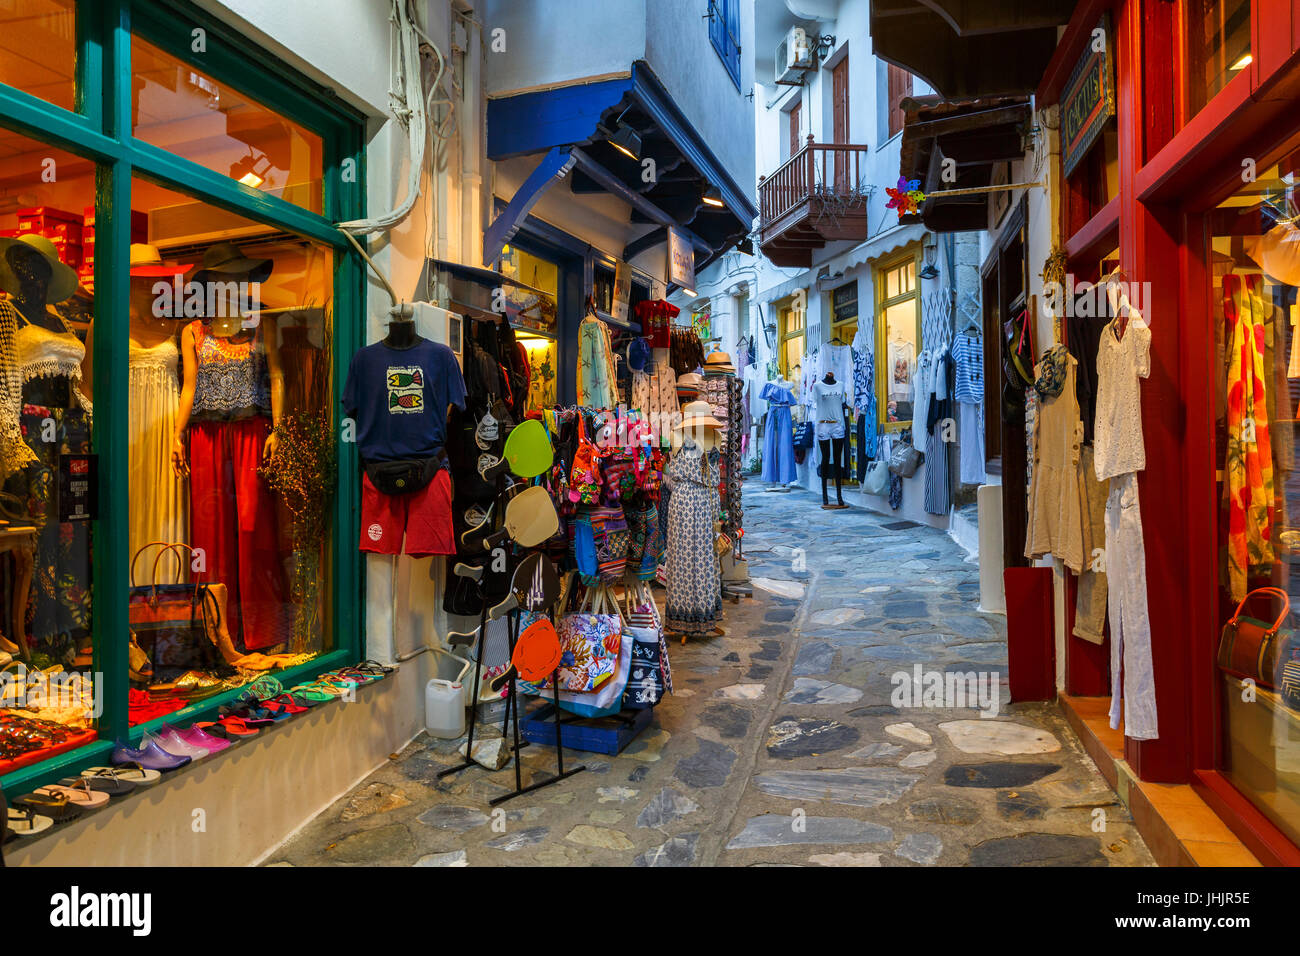 Street with a shops in Skopelos town, Greece. - Stock Image